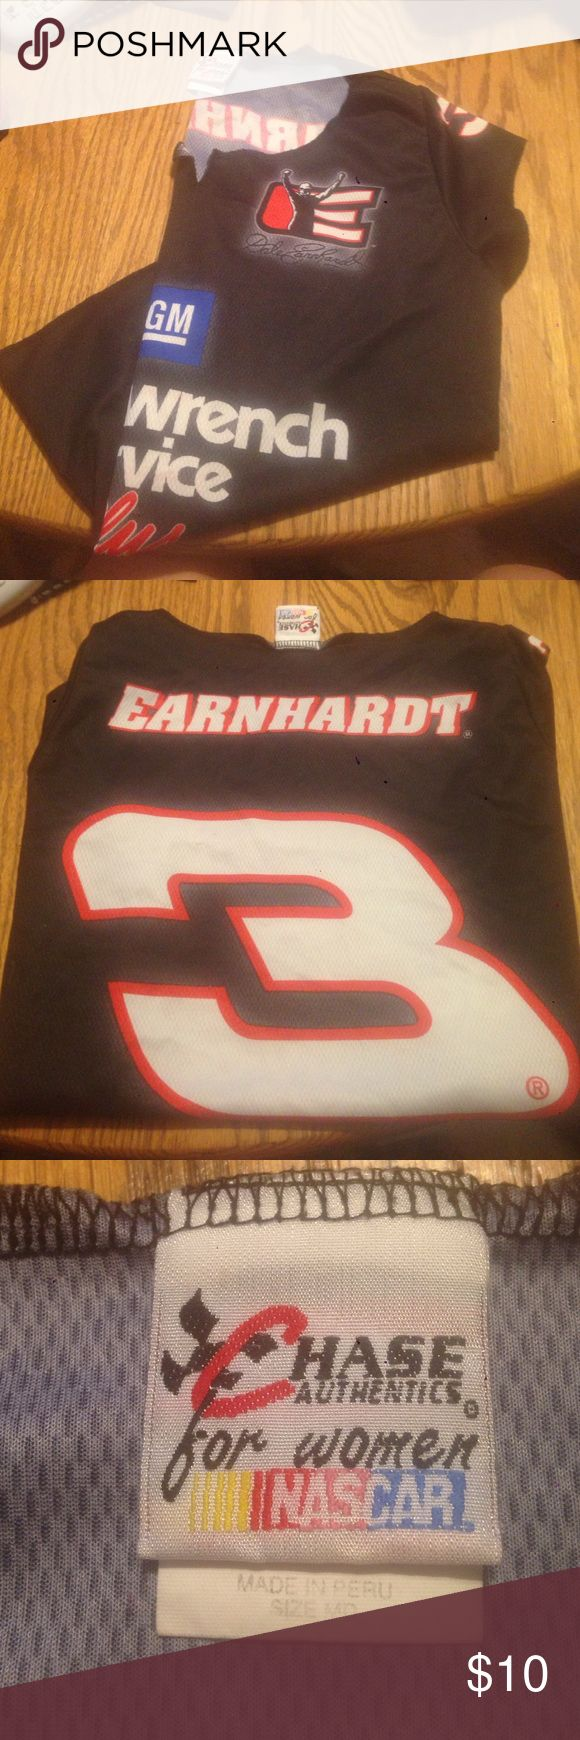 Dale Eanrhardt 3 NASCAR shirt Dale Earnhardt 3 NASCAR Shirt. 30% off when you bundle 2 or more items! I am also open to offers!! Tops